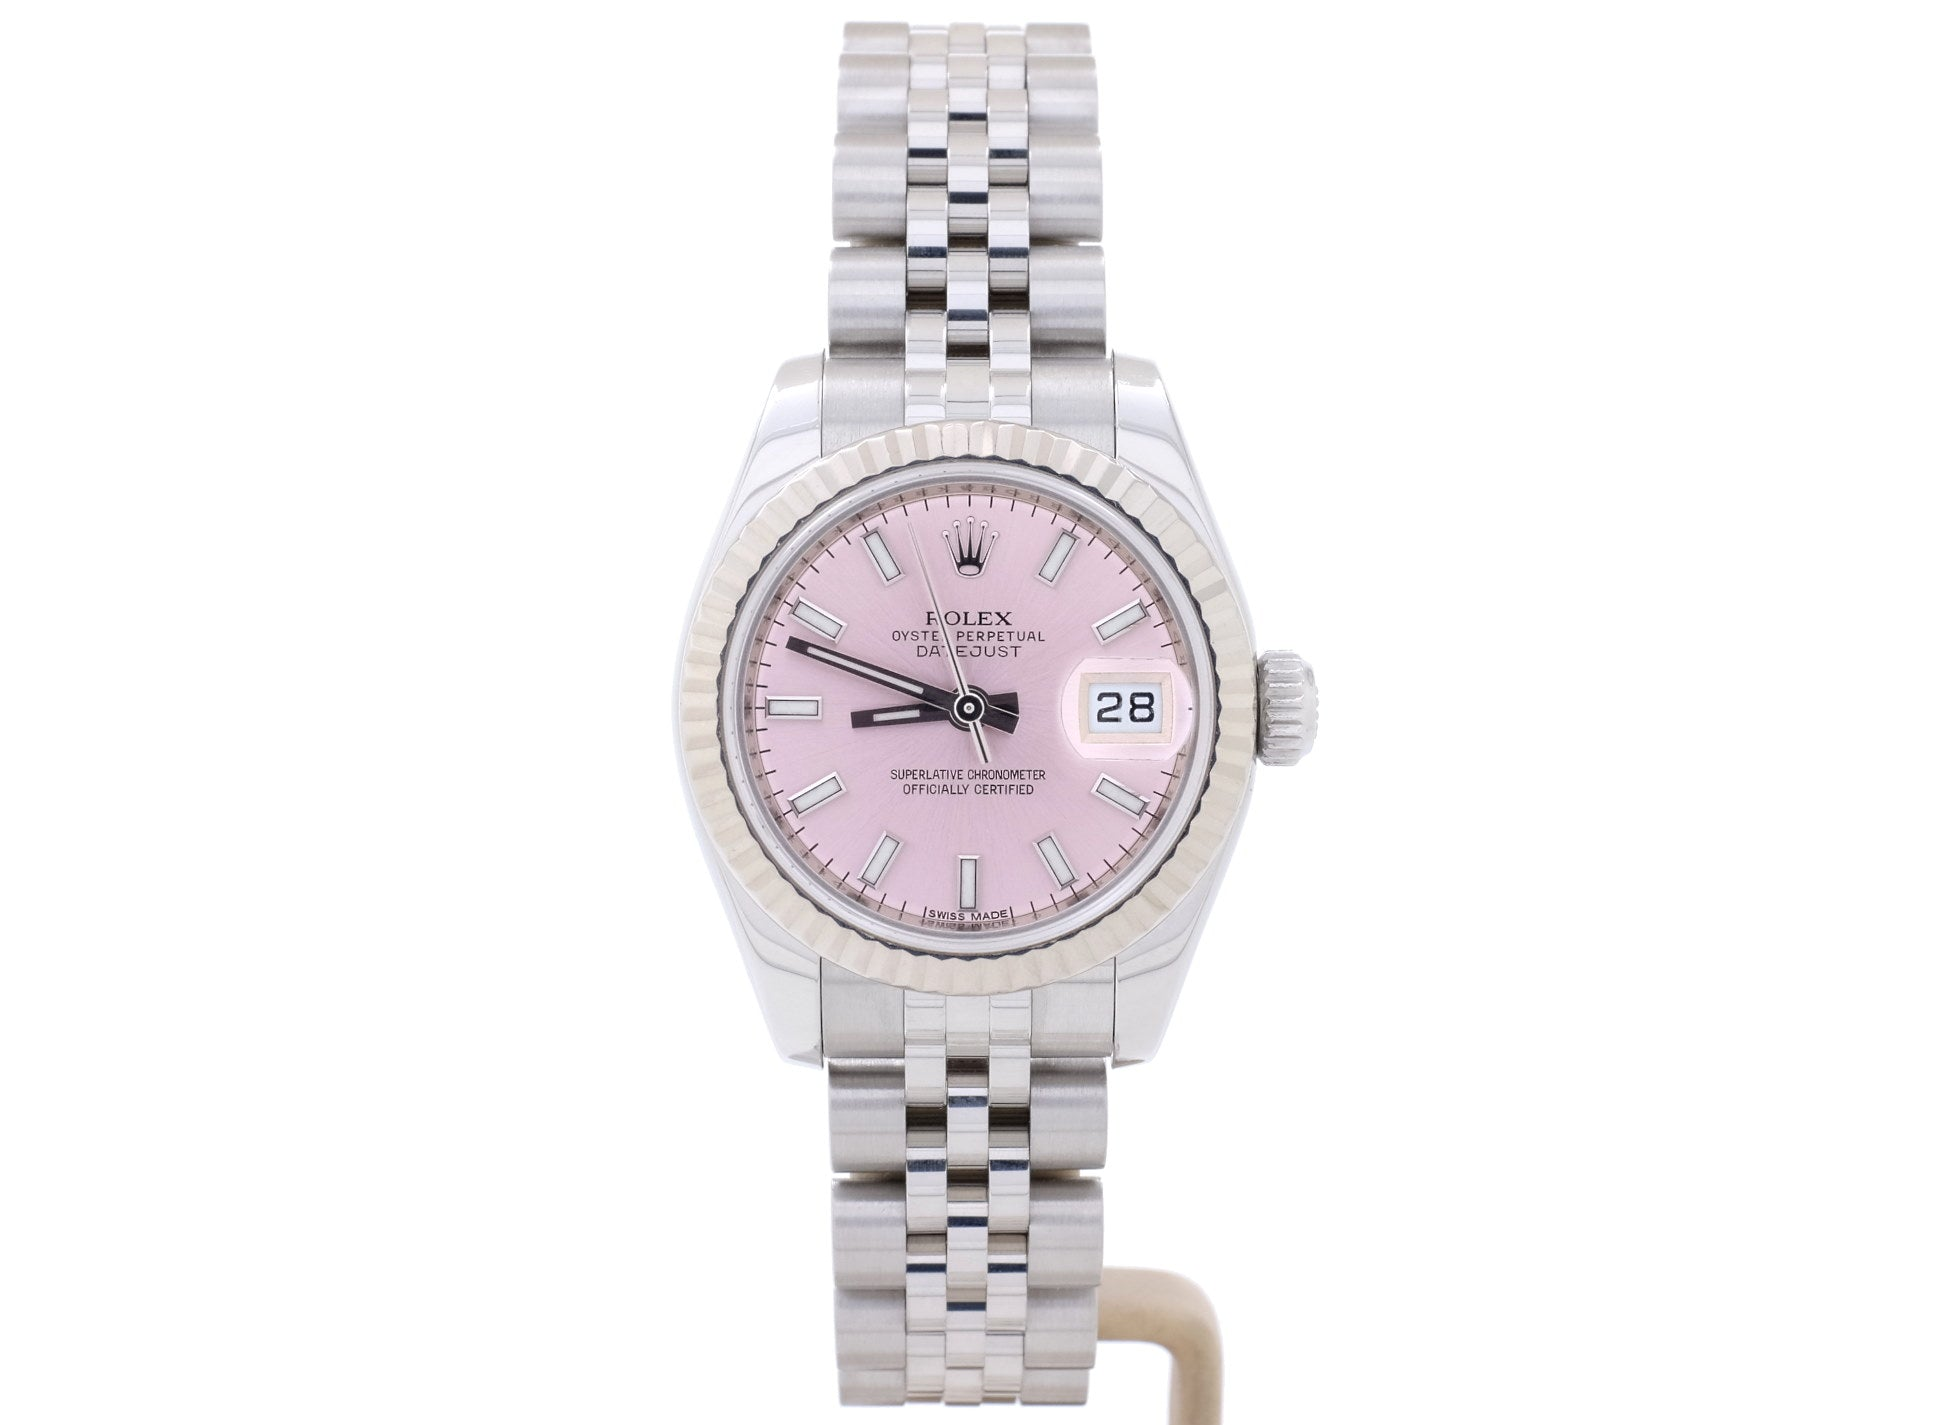 26mm Pink Dial Rolex LADY-DATEJUST 179174 with 18ct White Gold Bezel